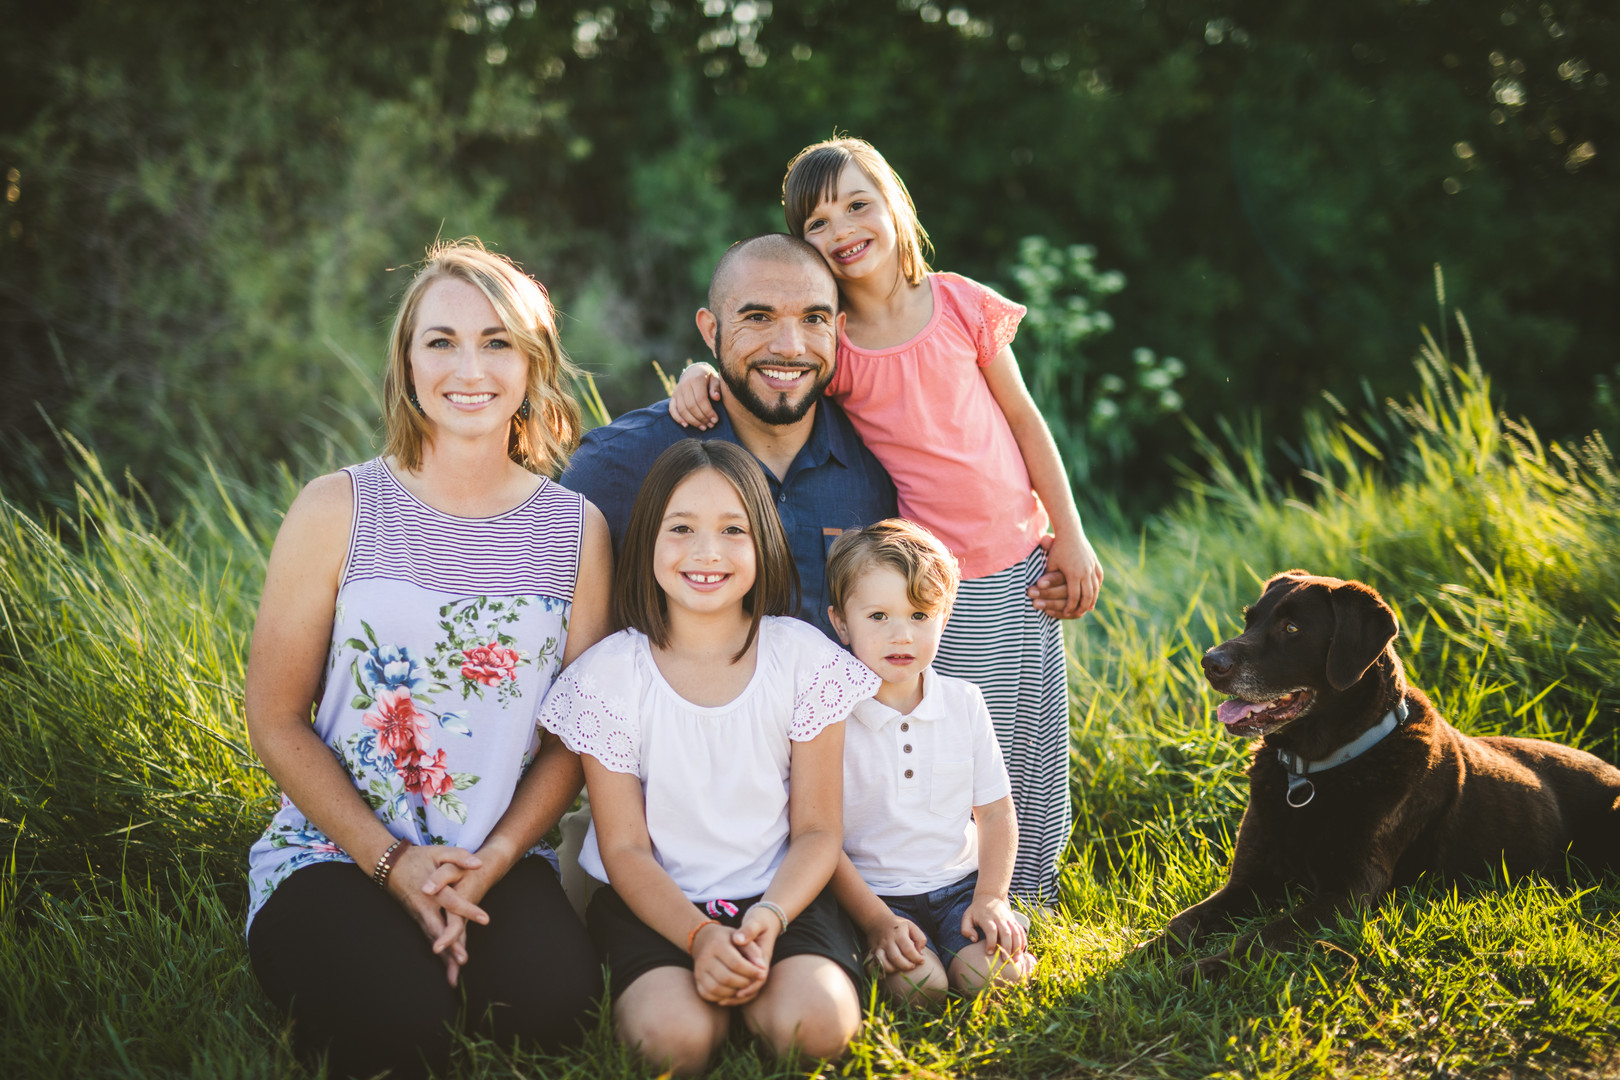 Spring Family Photos by 40 Watt Photo